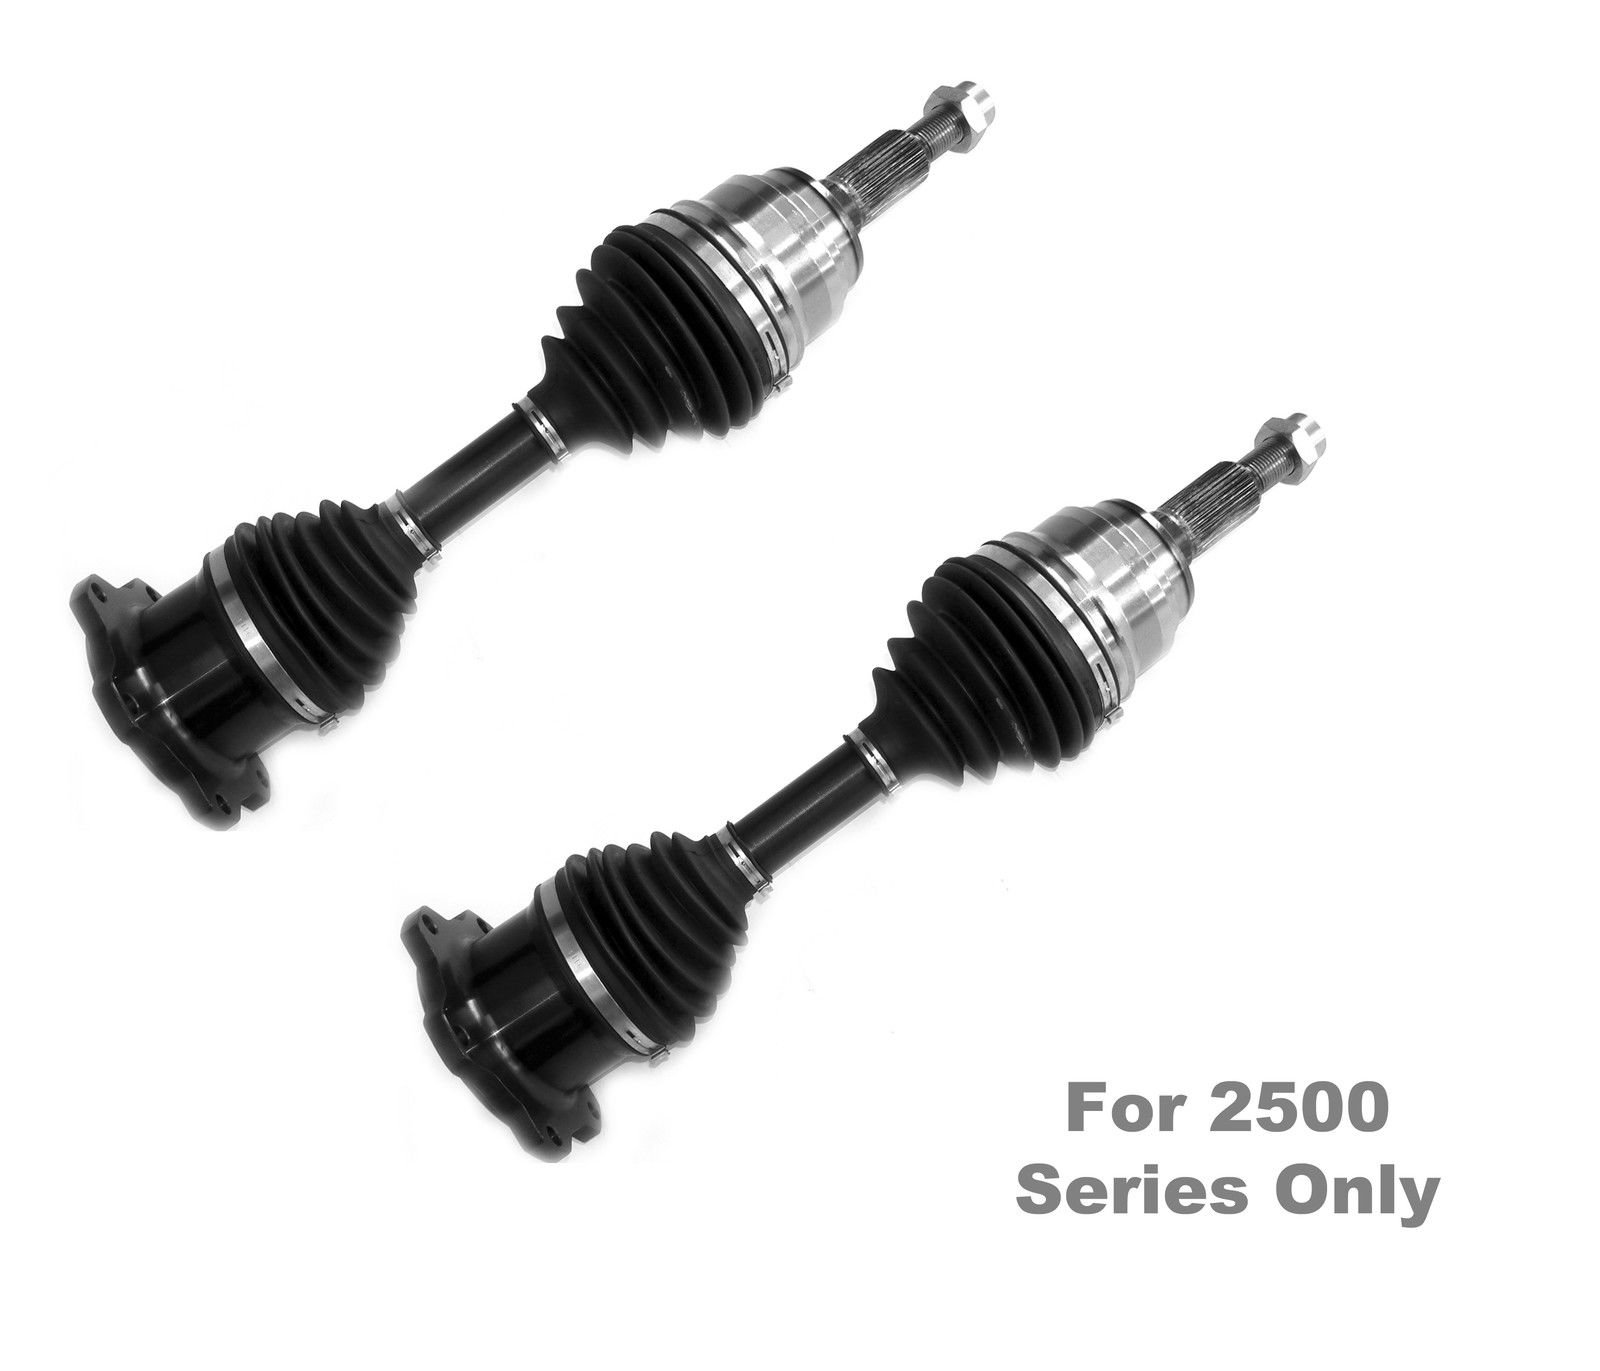 DTA DT1207520751 2 Front CV Axles - Pair - Fits Avalanche 2500, Silverado 2500, 3500 Suburban 2500, Sierra 2500, 3500, Hummer H2 by DRIVE TECH AMERICA (Image #1)